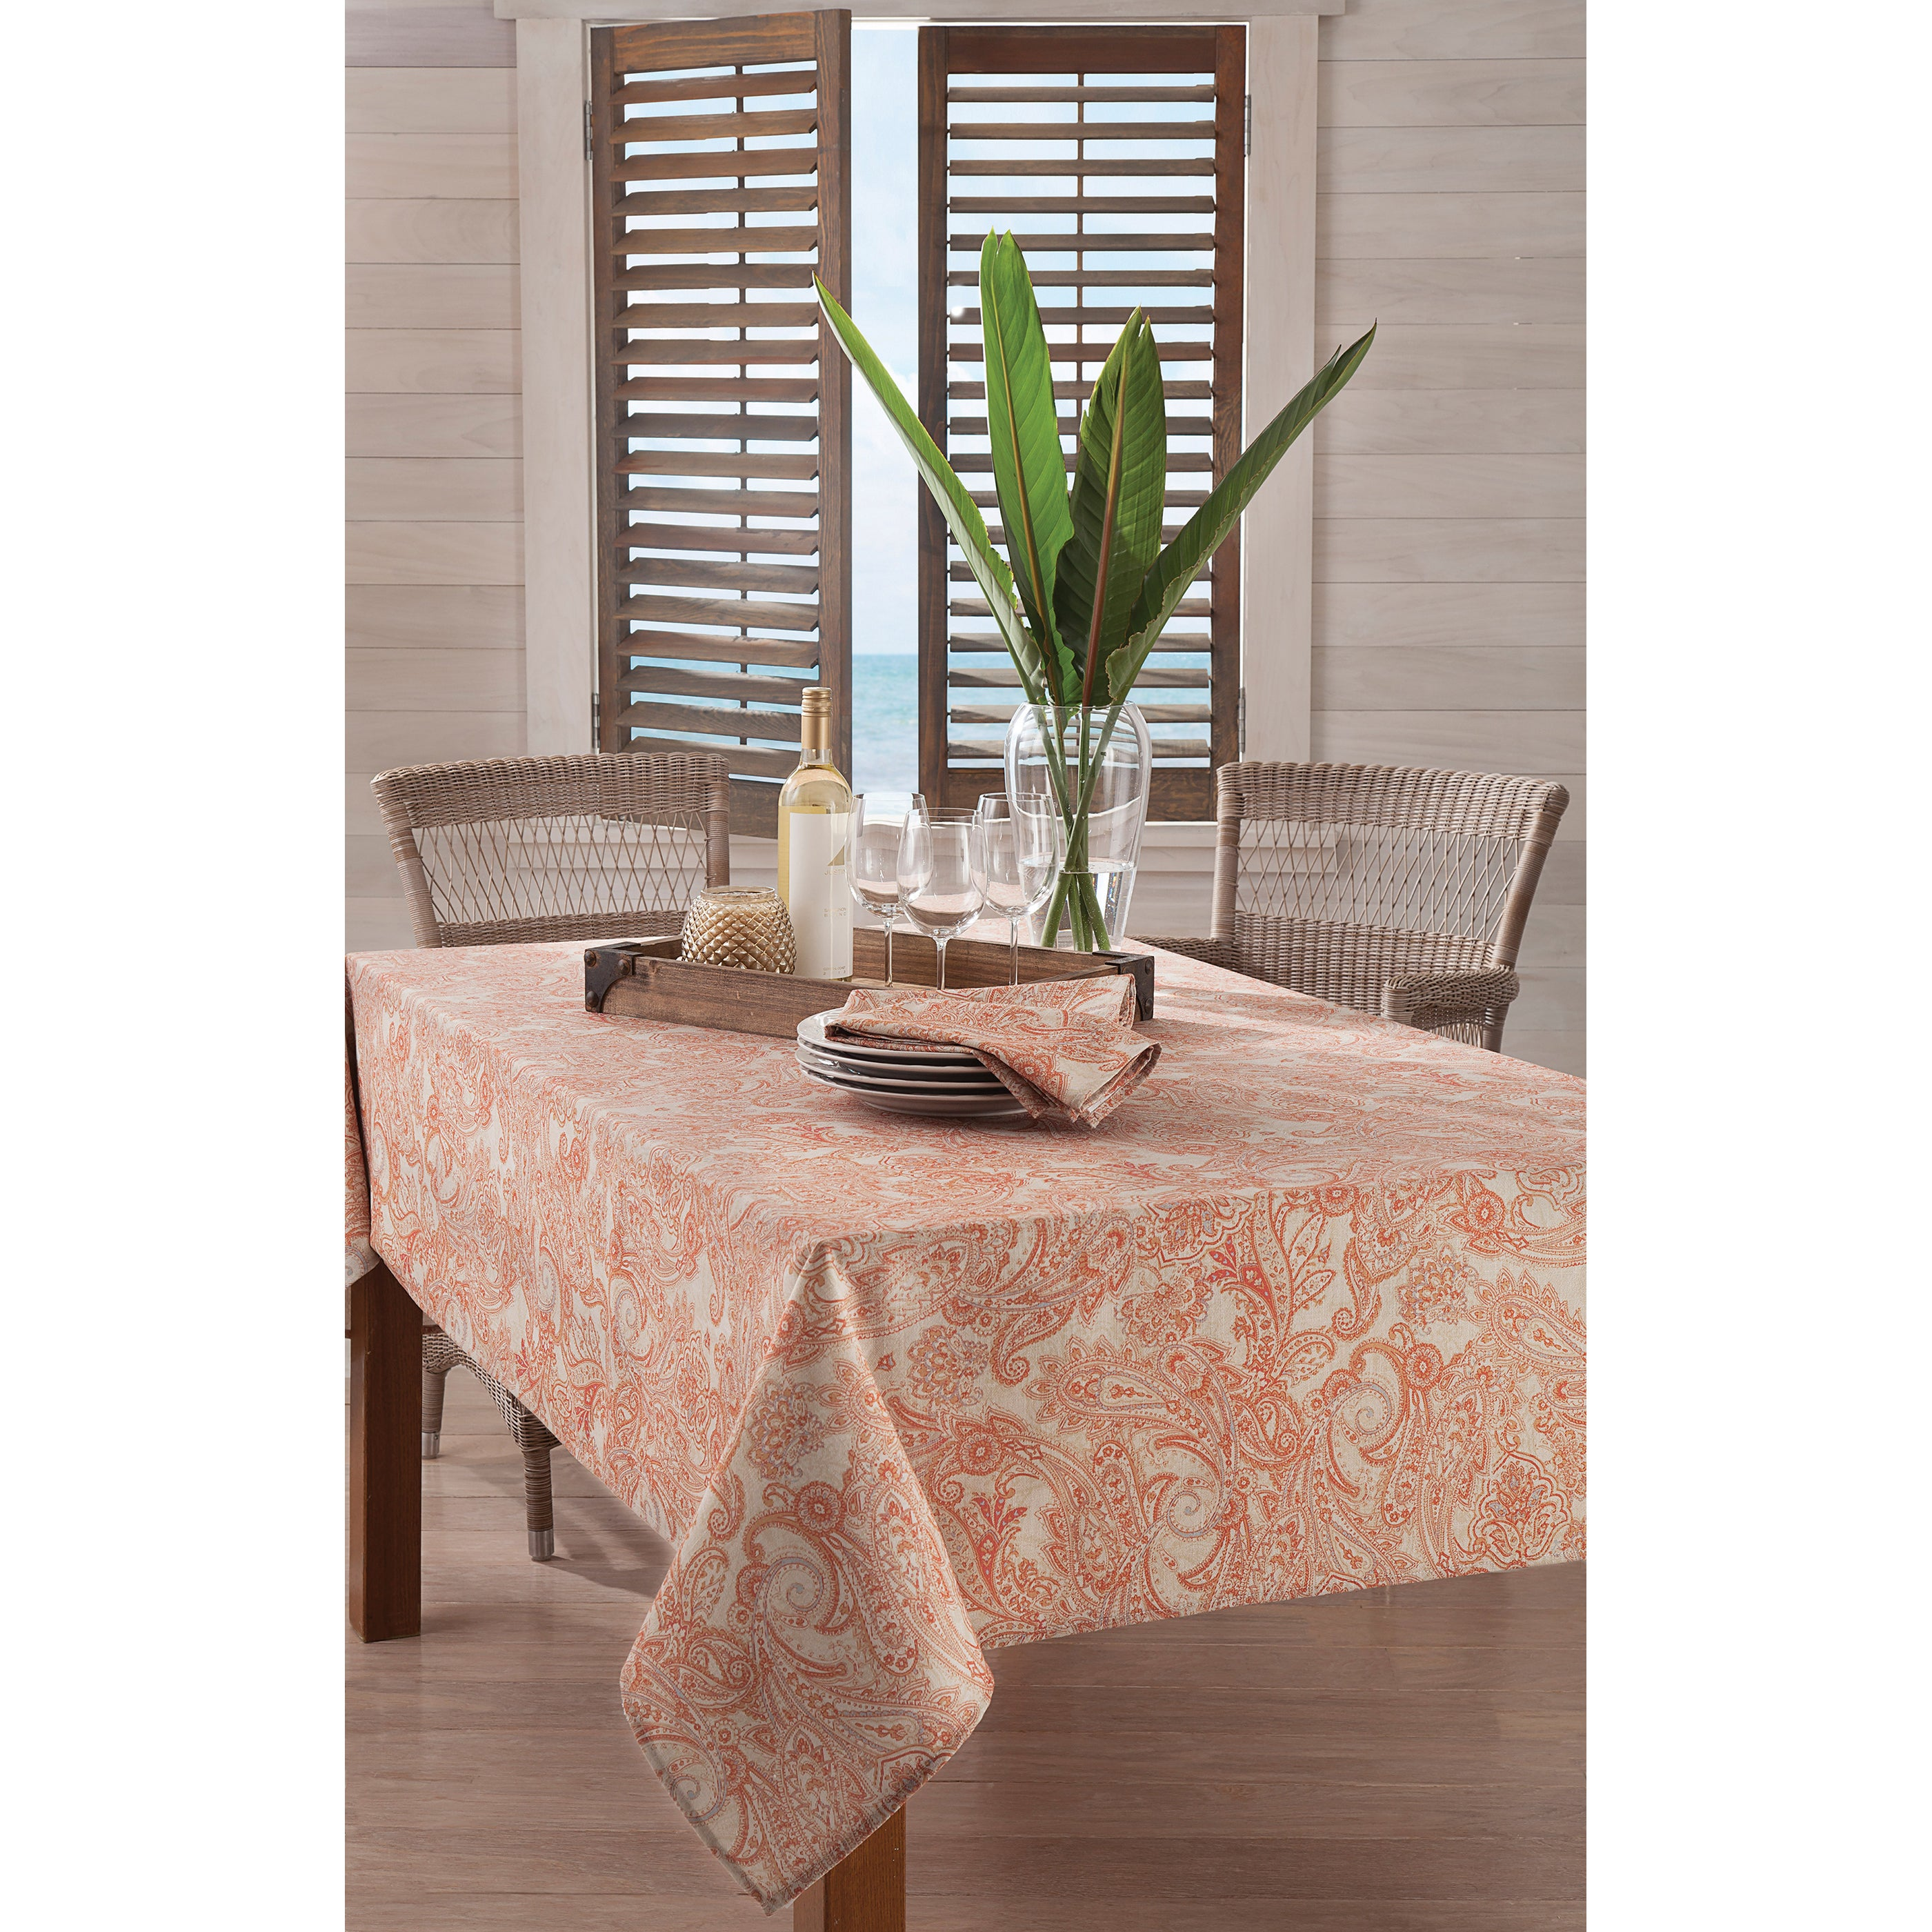 Beau Shop Tommy Bahama East India Paisley Tablecloth   Free Shipping On Orders  Over $45   Overstock.com   11484313